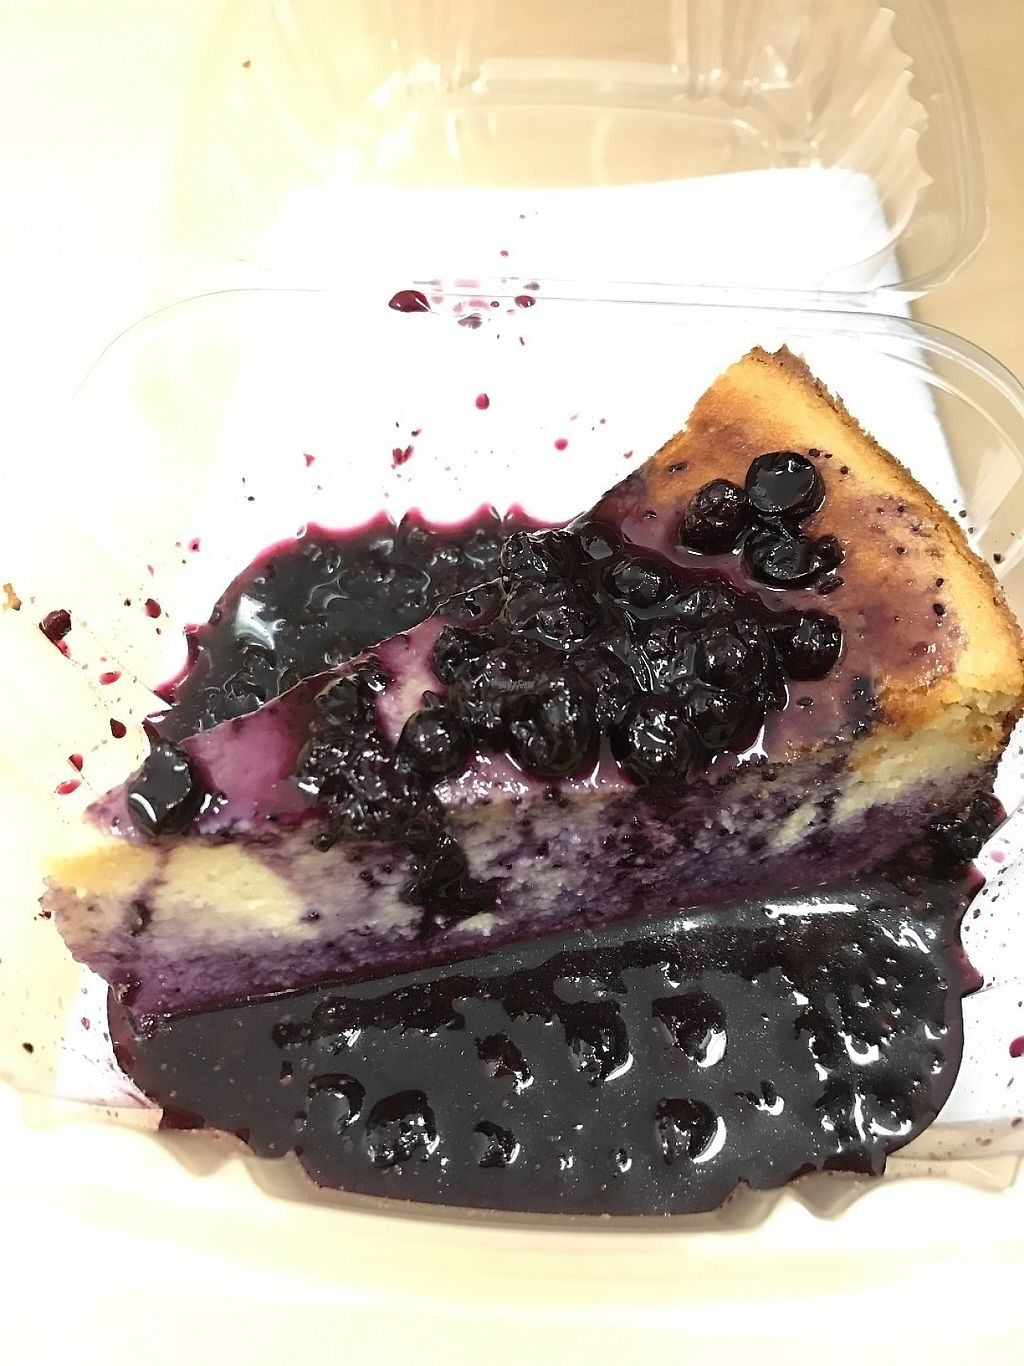 """Photo of Urban Beans  by <a href=""""/members/profile/Tigra220"""">Tigra220</a> <br/>Blueberry Cheesecake <br/> March 10, 2017  - <a href='/contact/abuse/image/52599/234765'>Report</a>"""